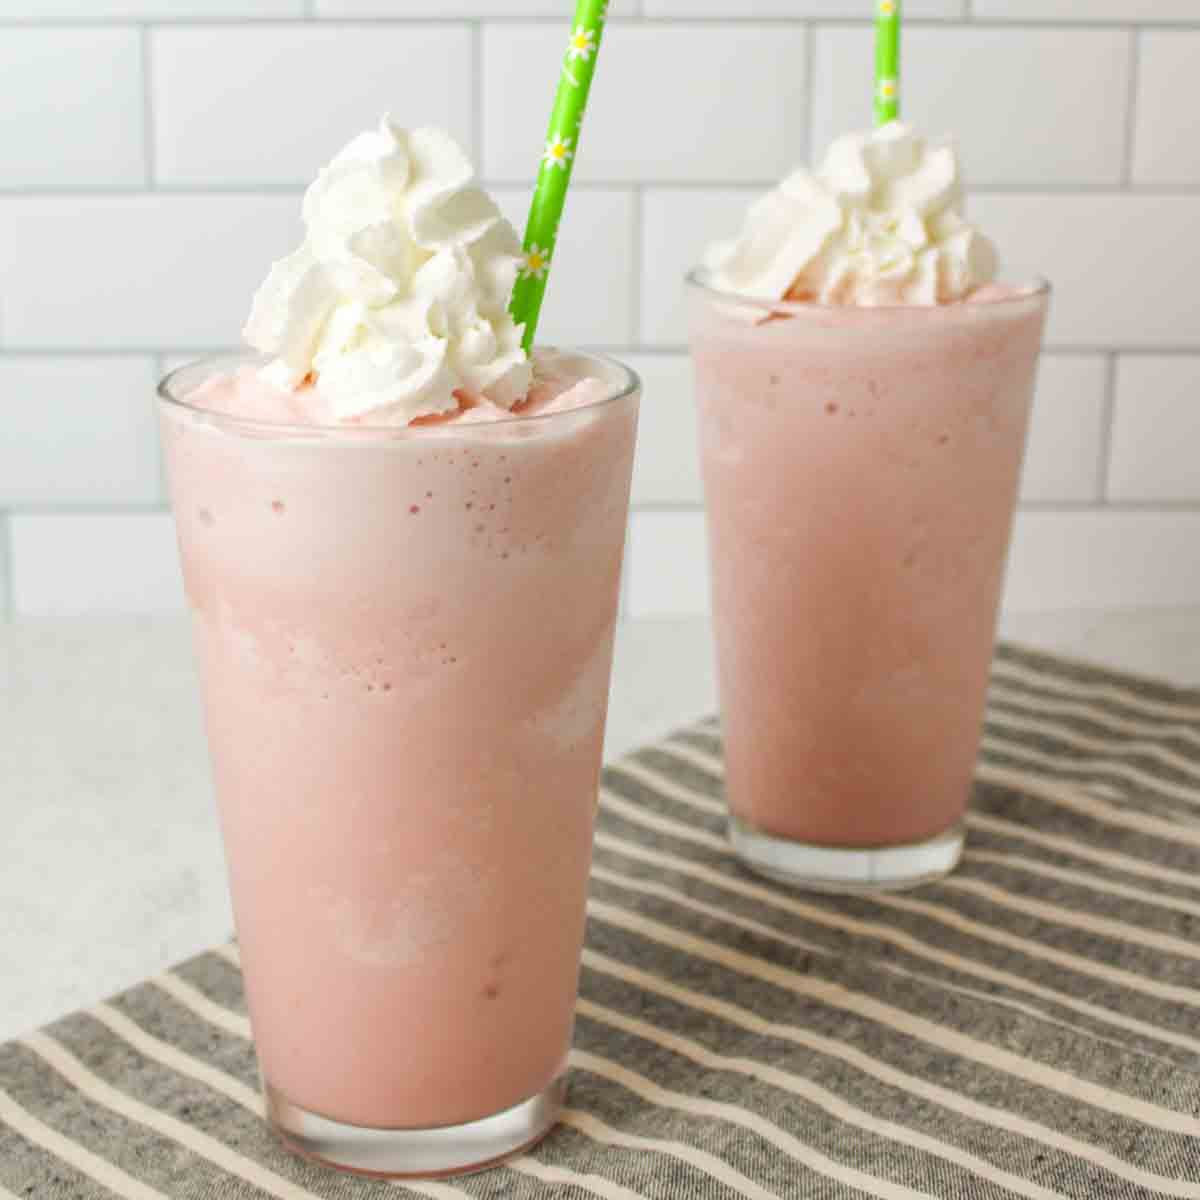 two glasses of light pink milkshakes with whipped cream and green straws